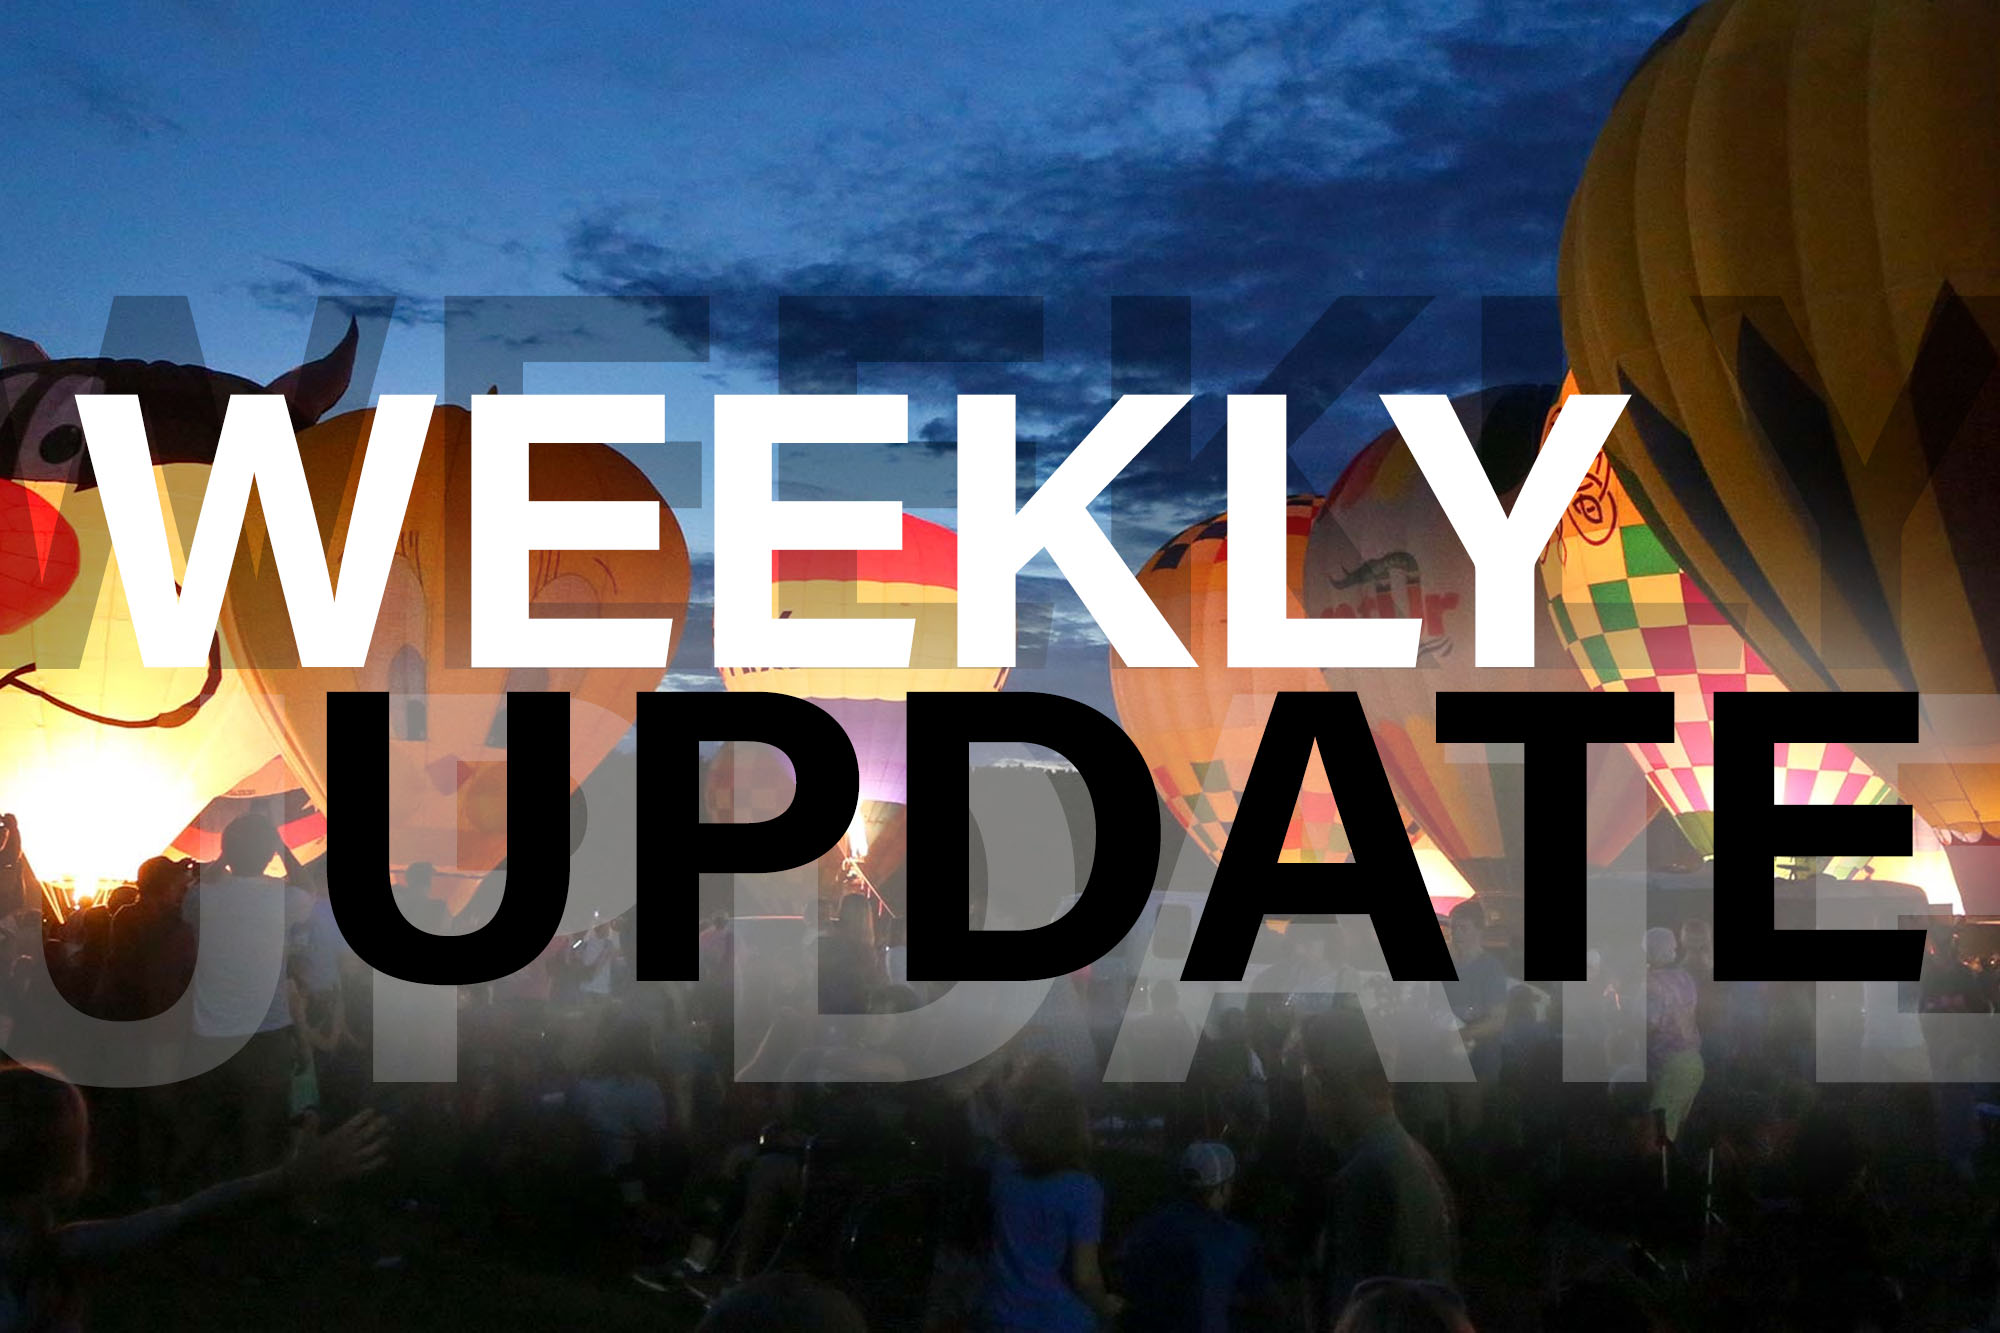 Weekly update mayor tab bowling march 05 2017 posted in city updates from the mayor s desk tags alabama austin high school basketball decatur